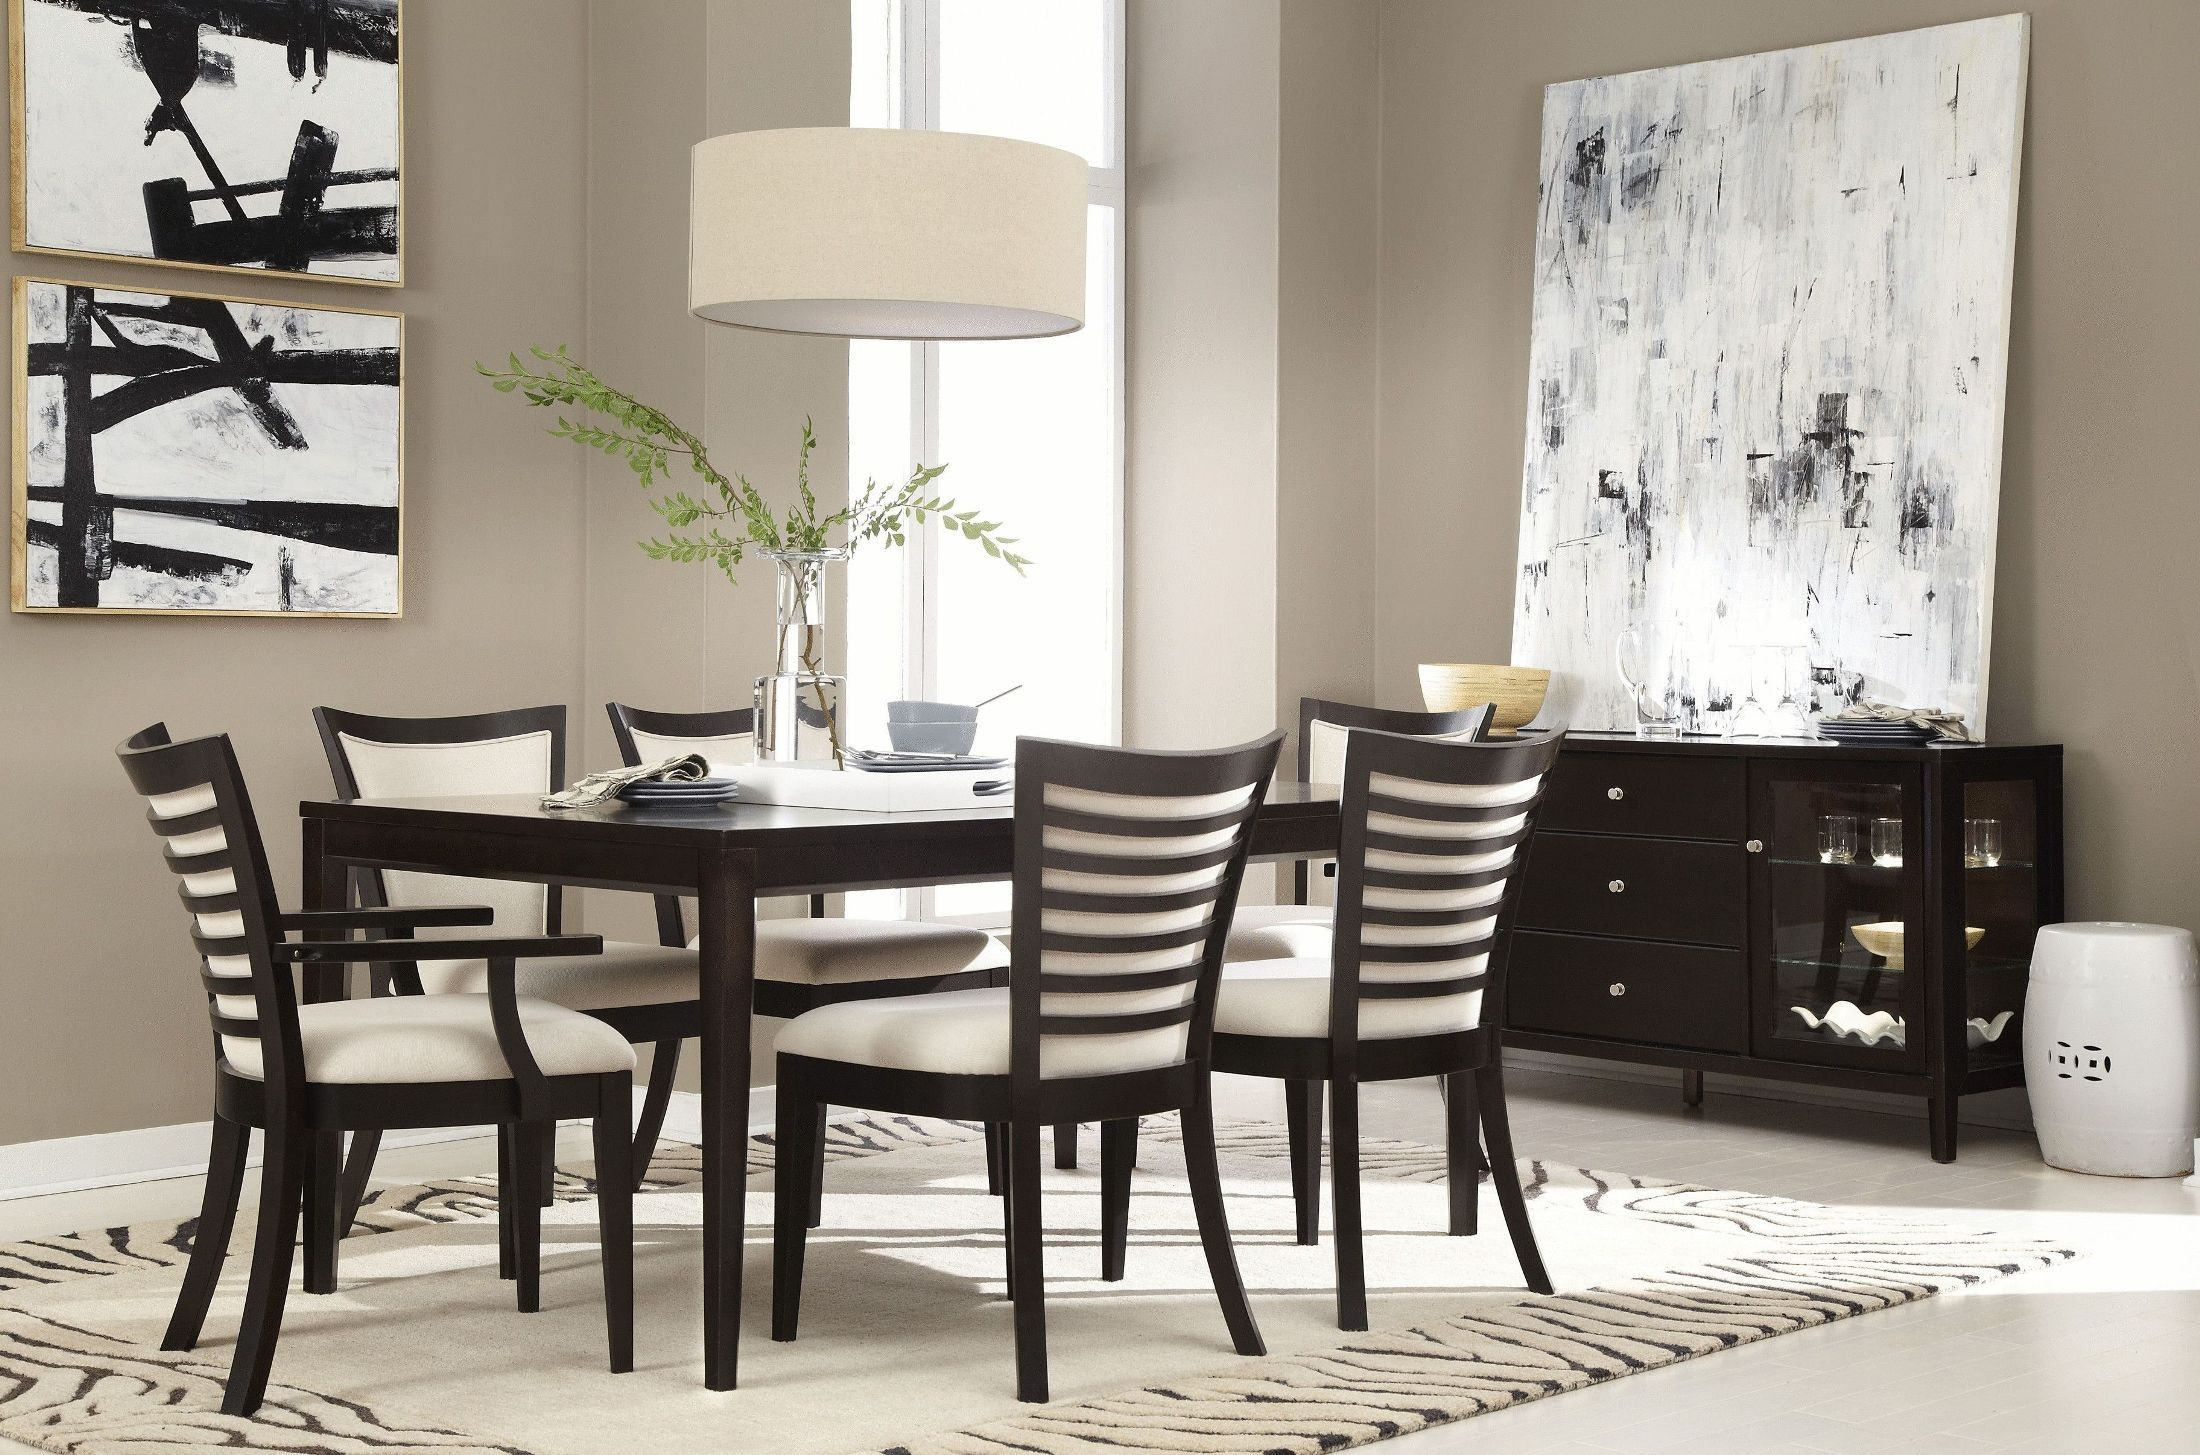 beckett brown 7 piece dining room set 355 1523k7 casana archive dining room set 7 pc mahogany stained rynfield